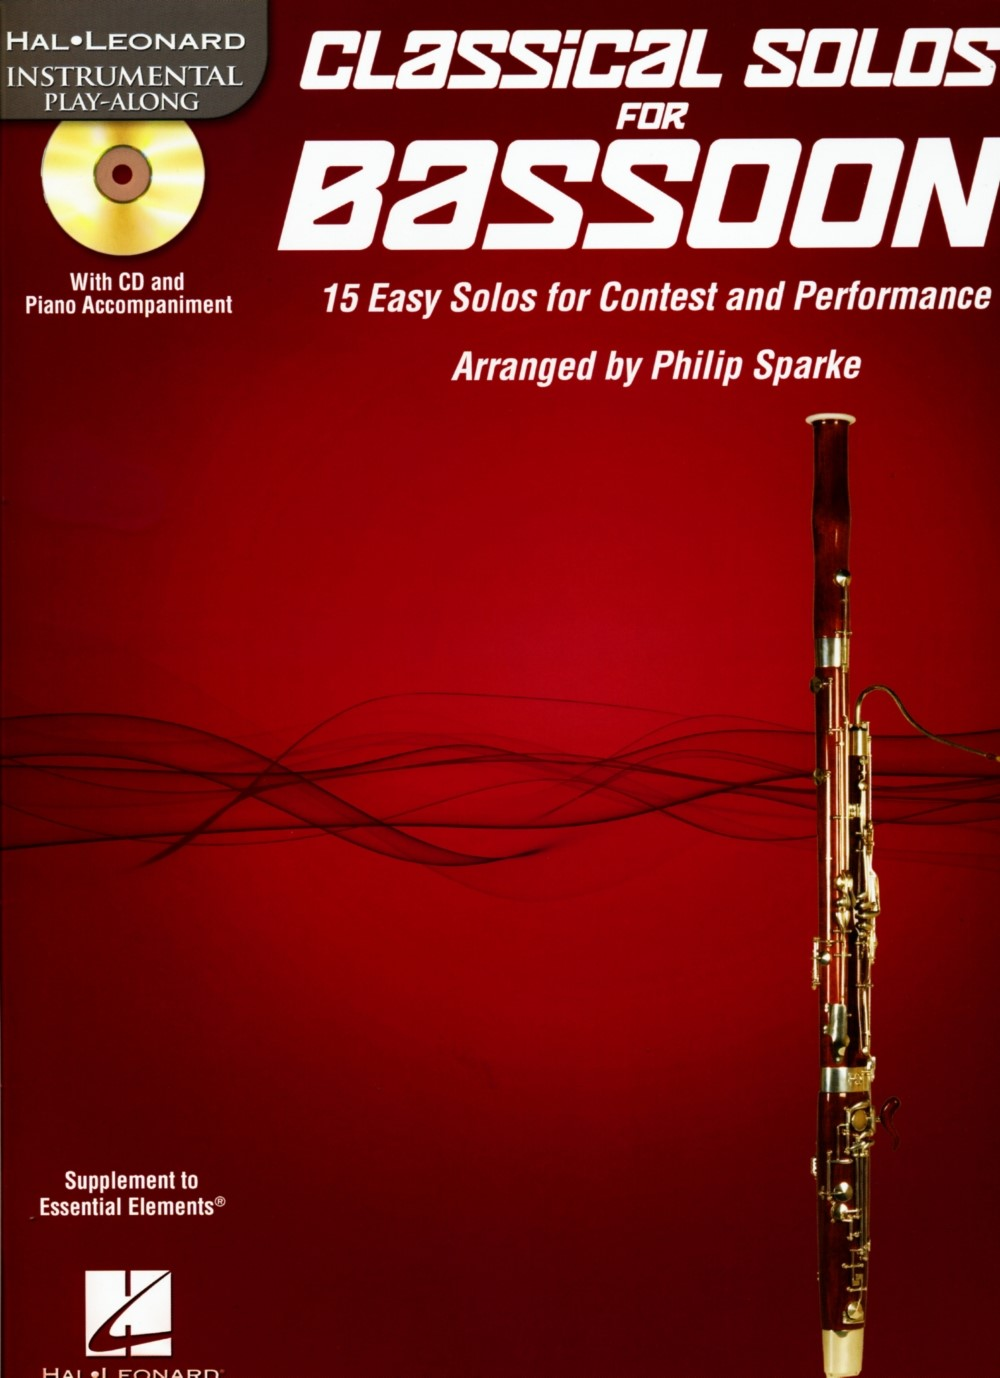 Hal Leonard Instrumental Play-Along Classical Solos for Bassoon by Philip Sparke (Book CD... by Hal Leonard Publishing Corporation